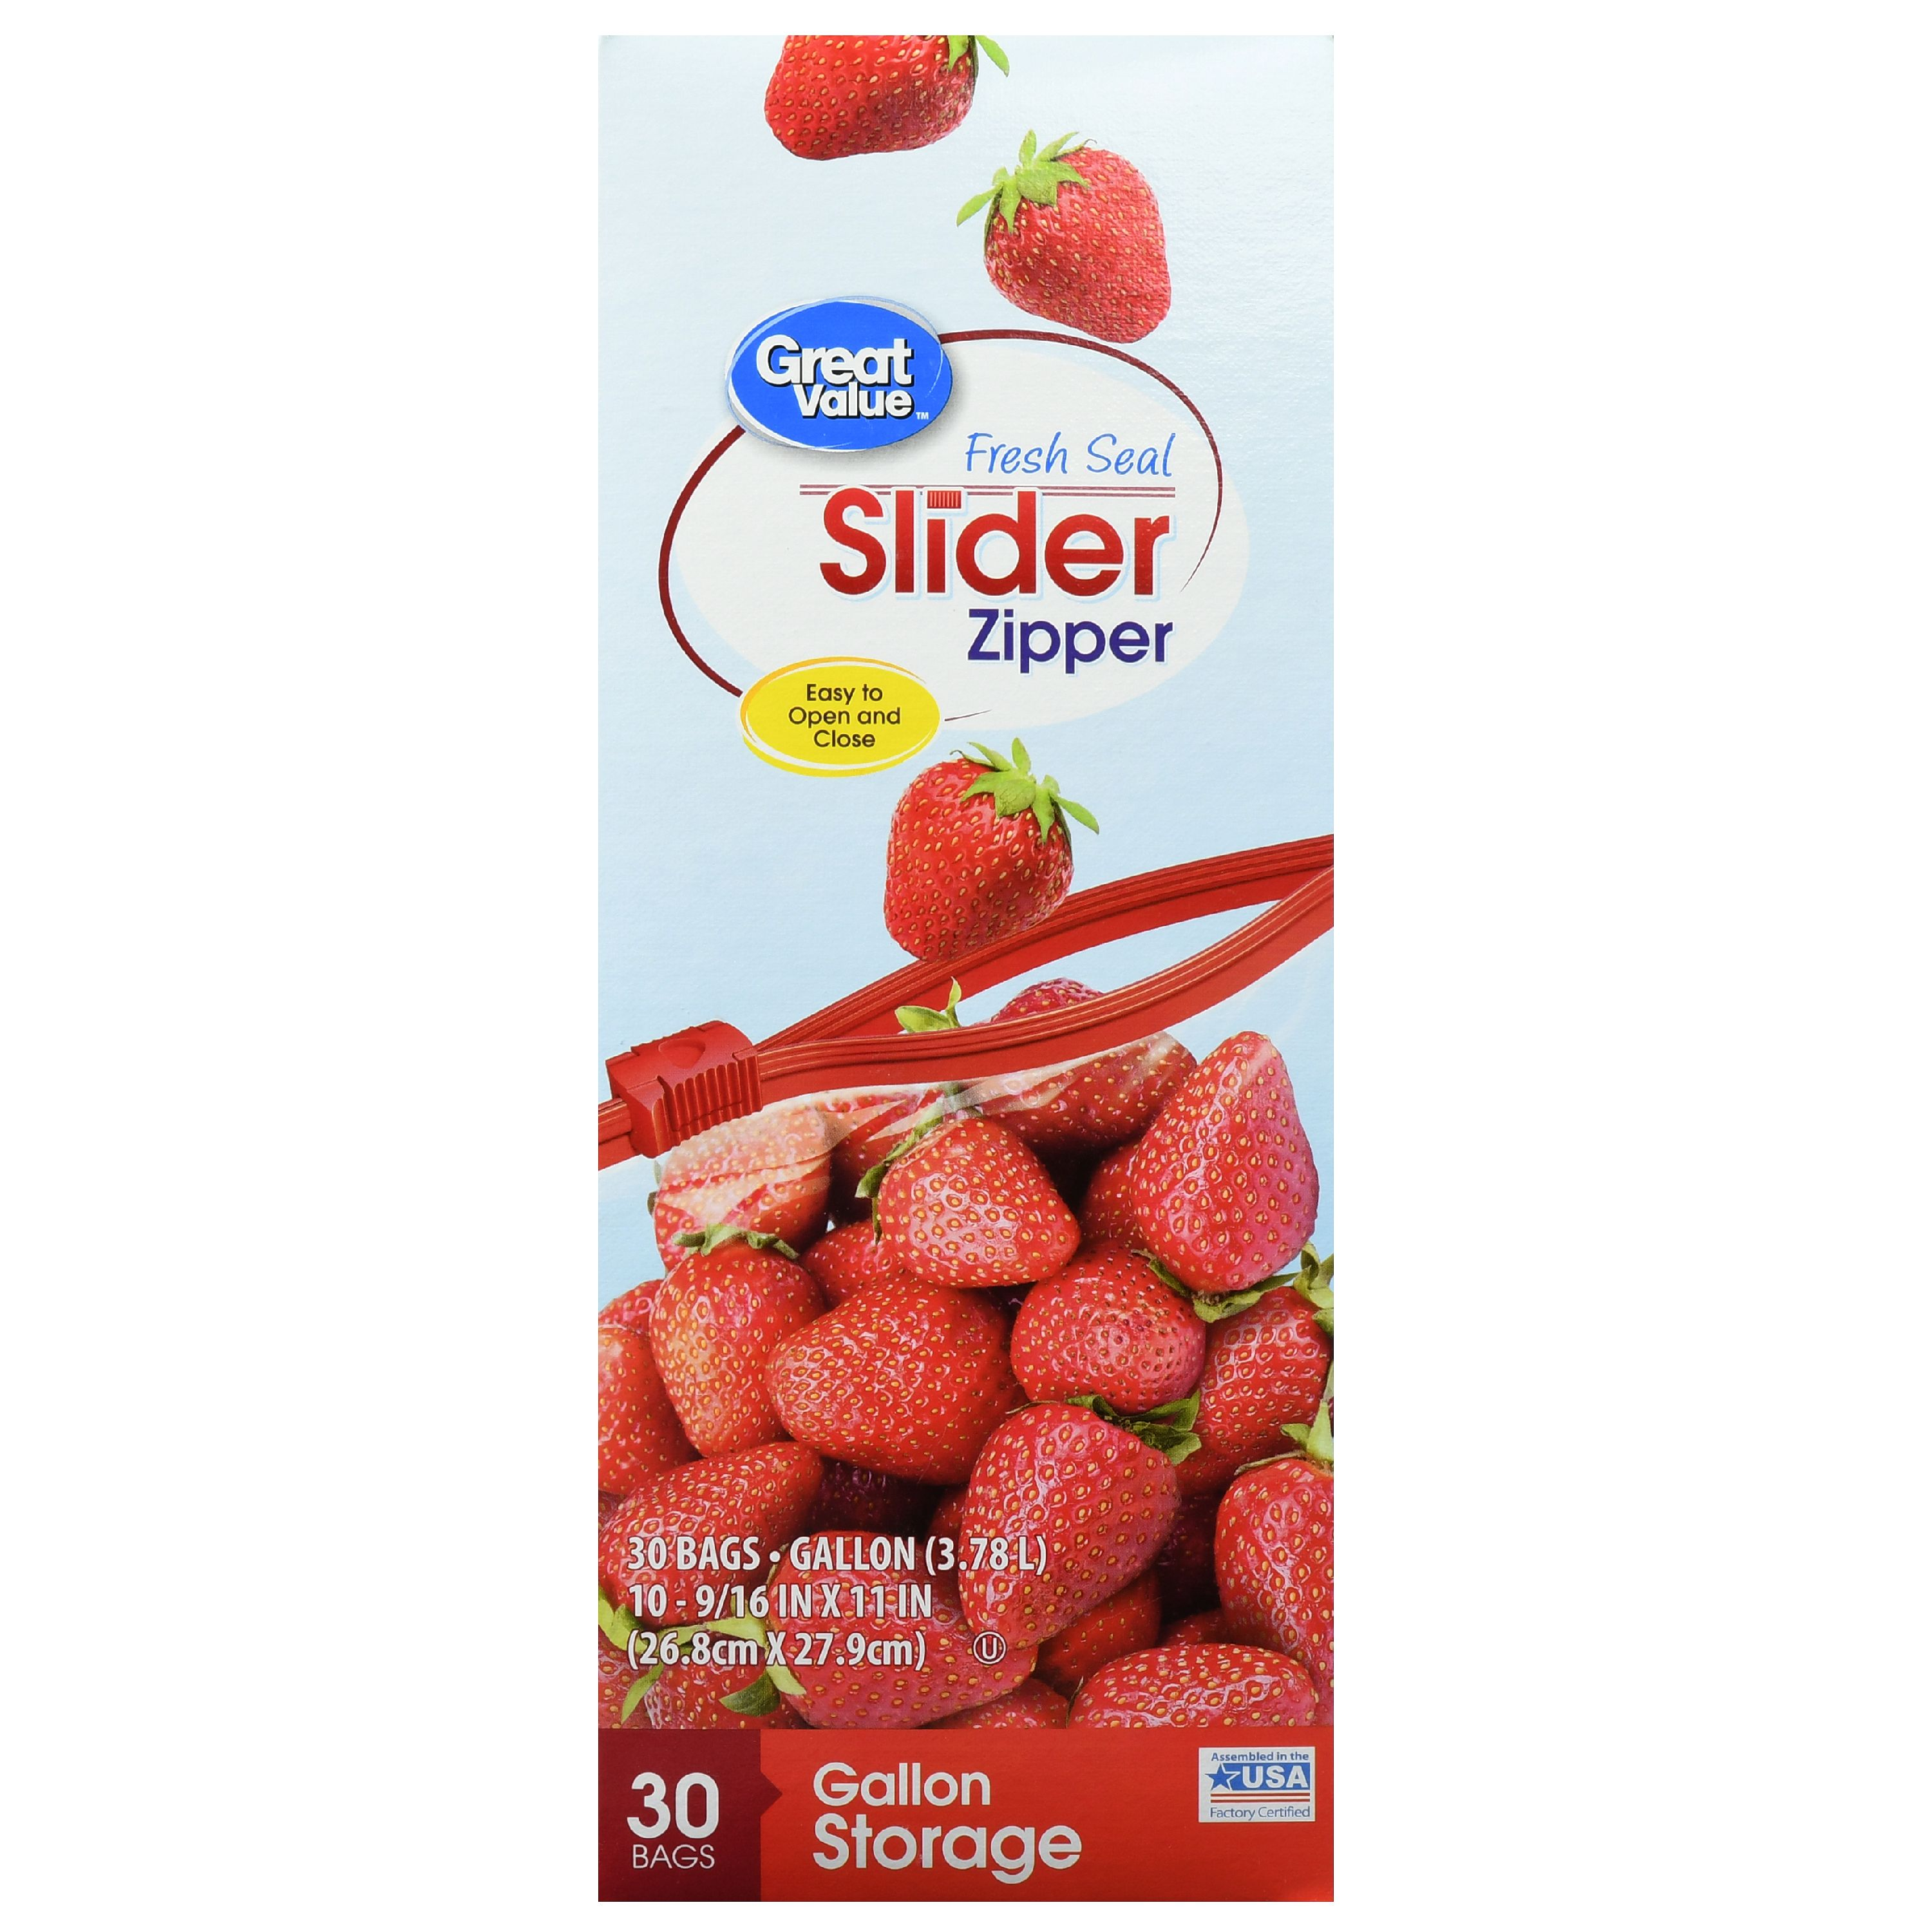 Great Value Slider Zipper Freezer Bags, Gallon, 30 Count